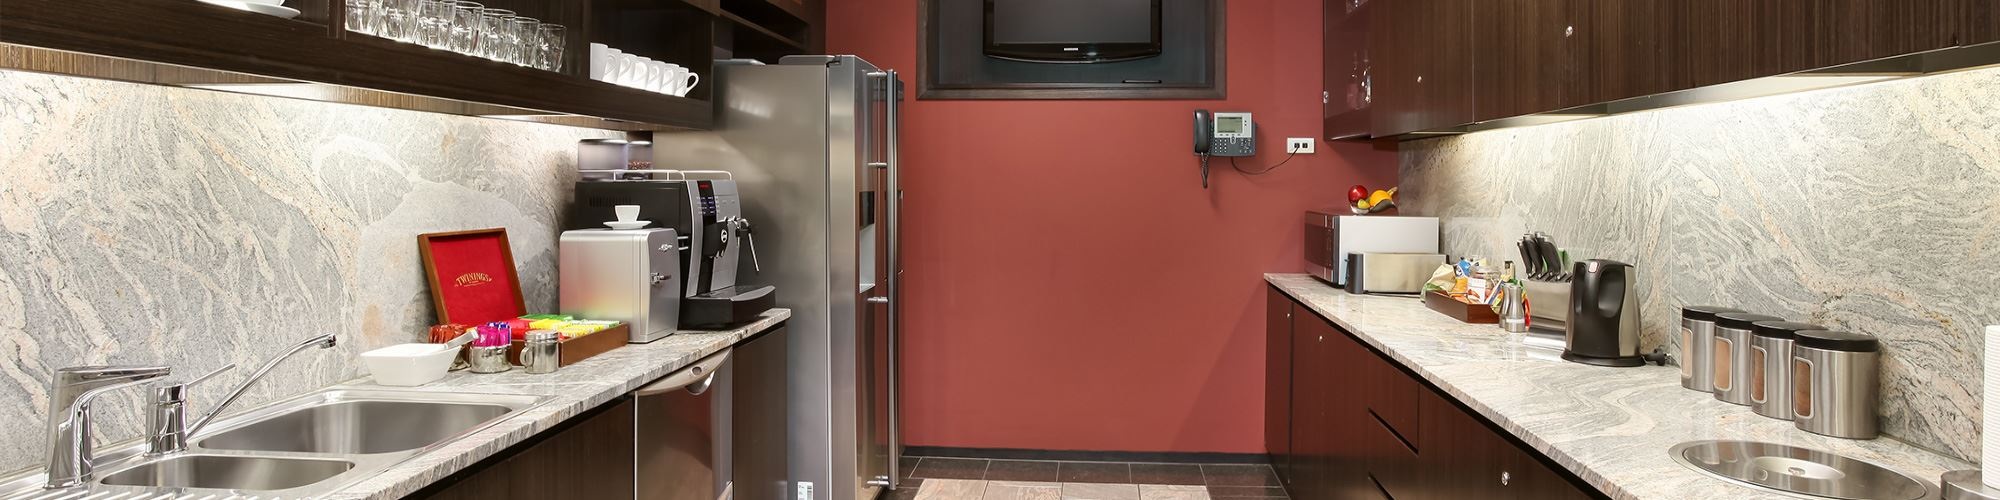 banner-lambtonquay-wellington-kitchen.jpg